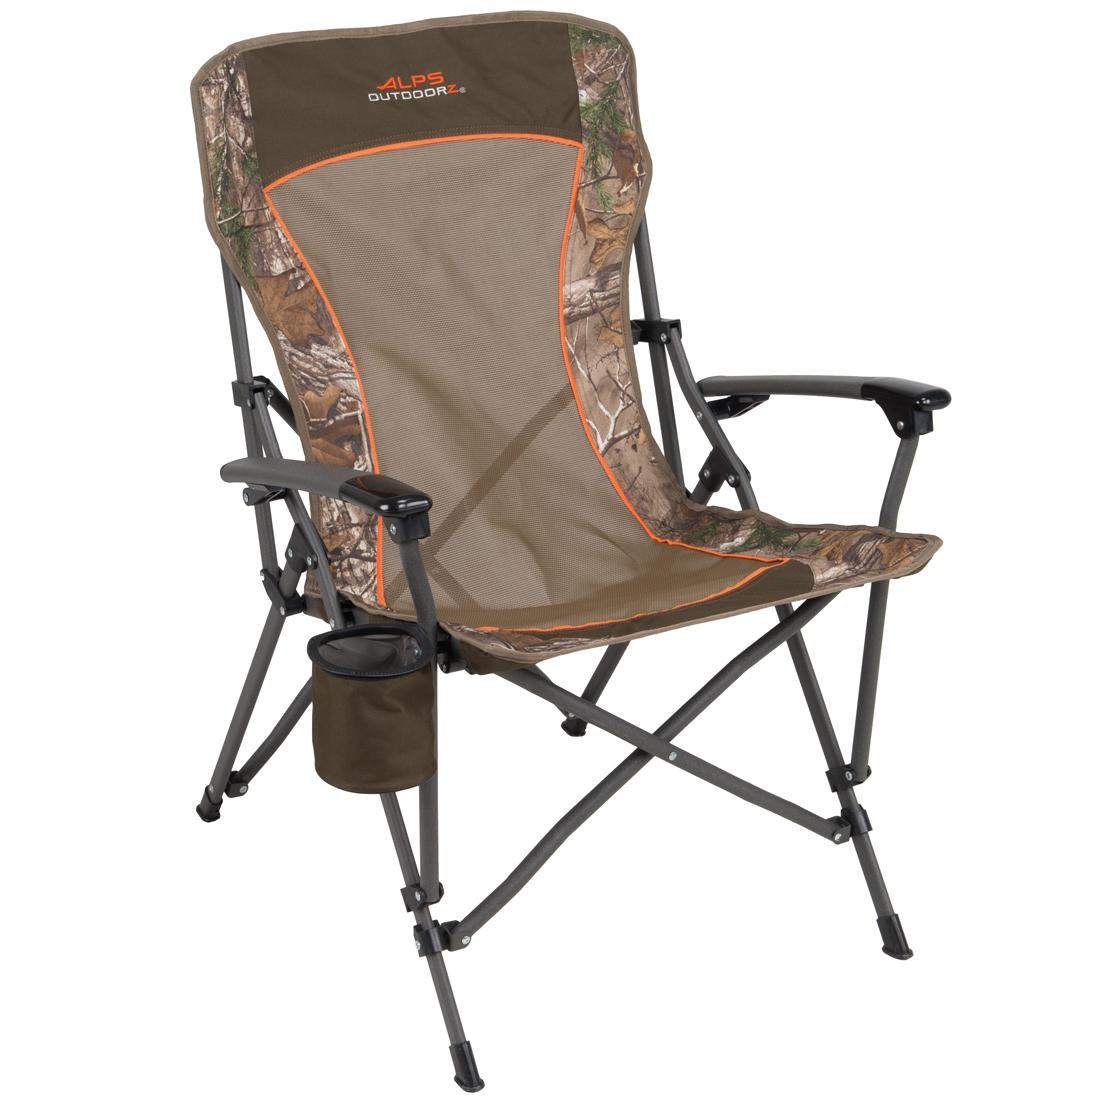 Alps Outdoorz King Kong Chair Realtree Edge Sports